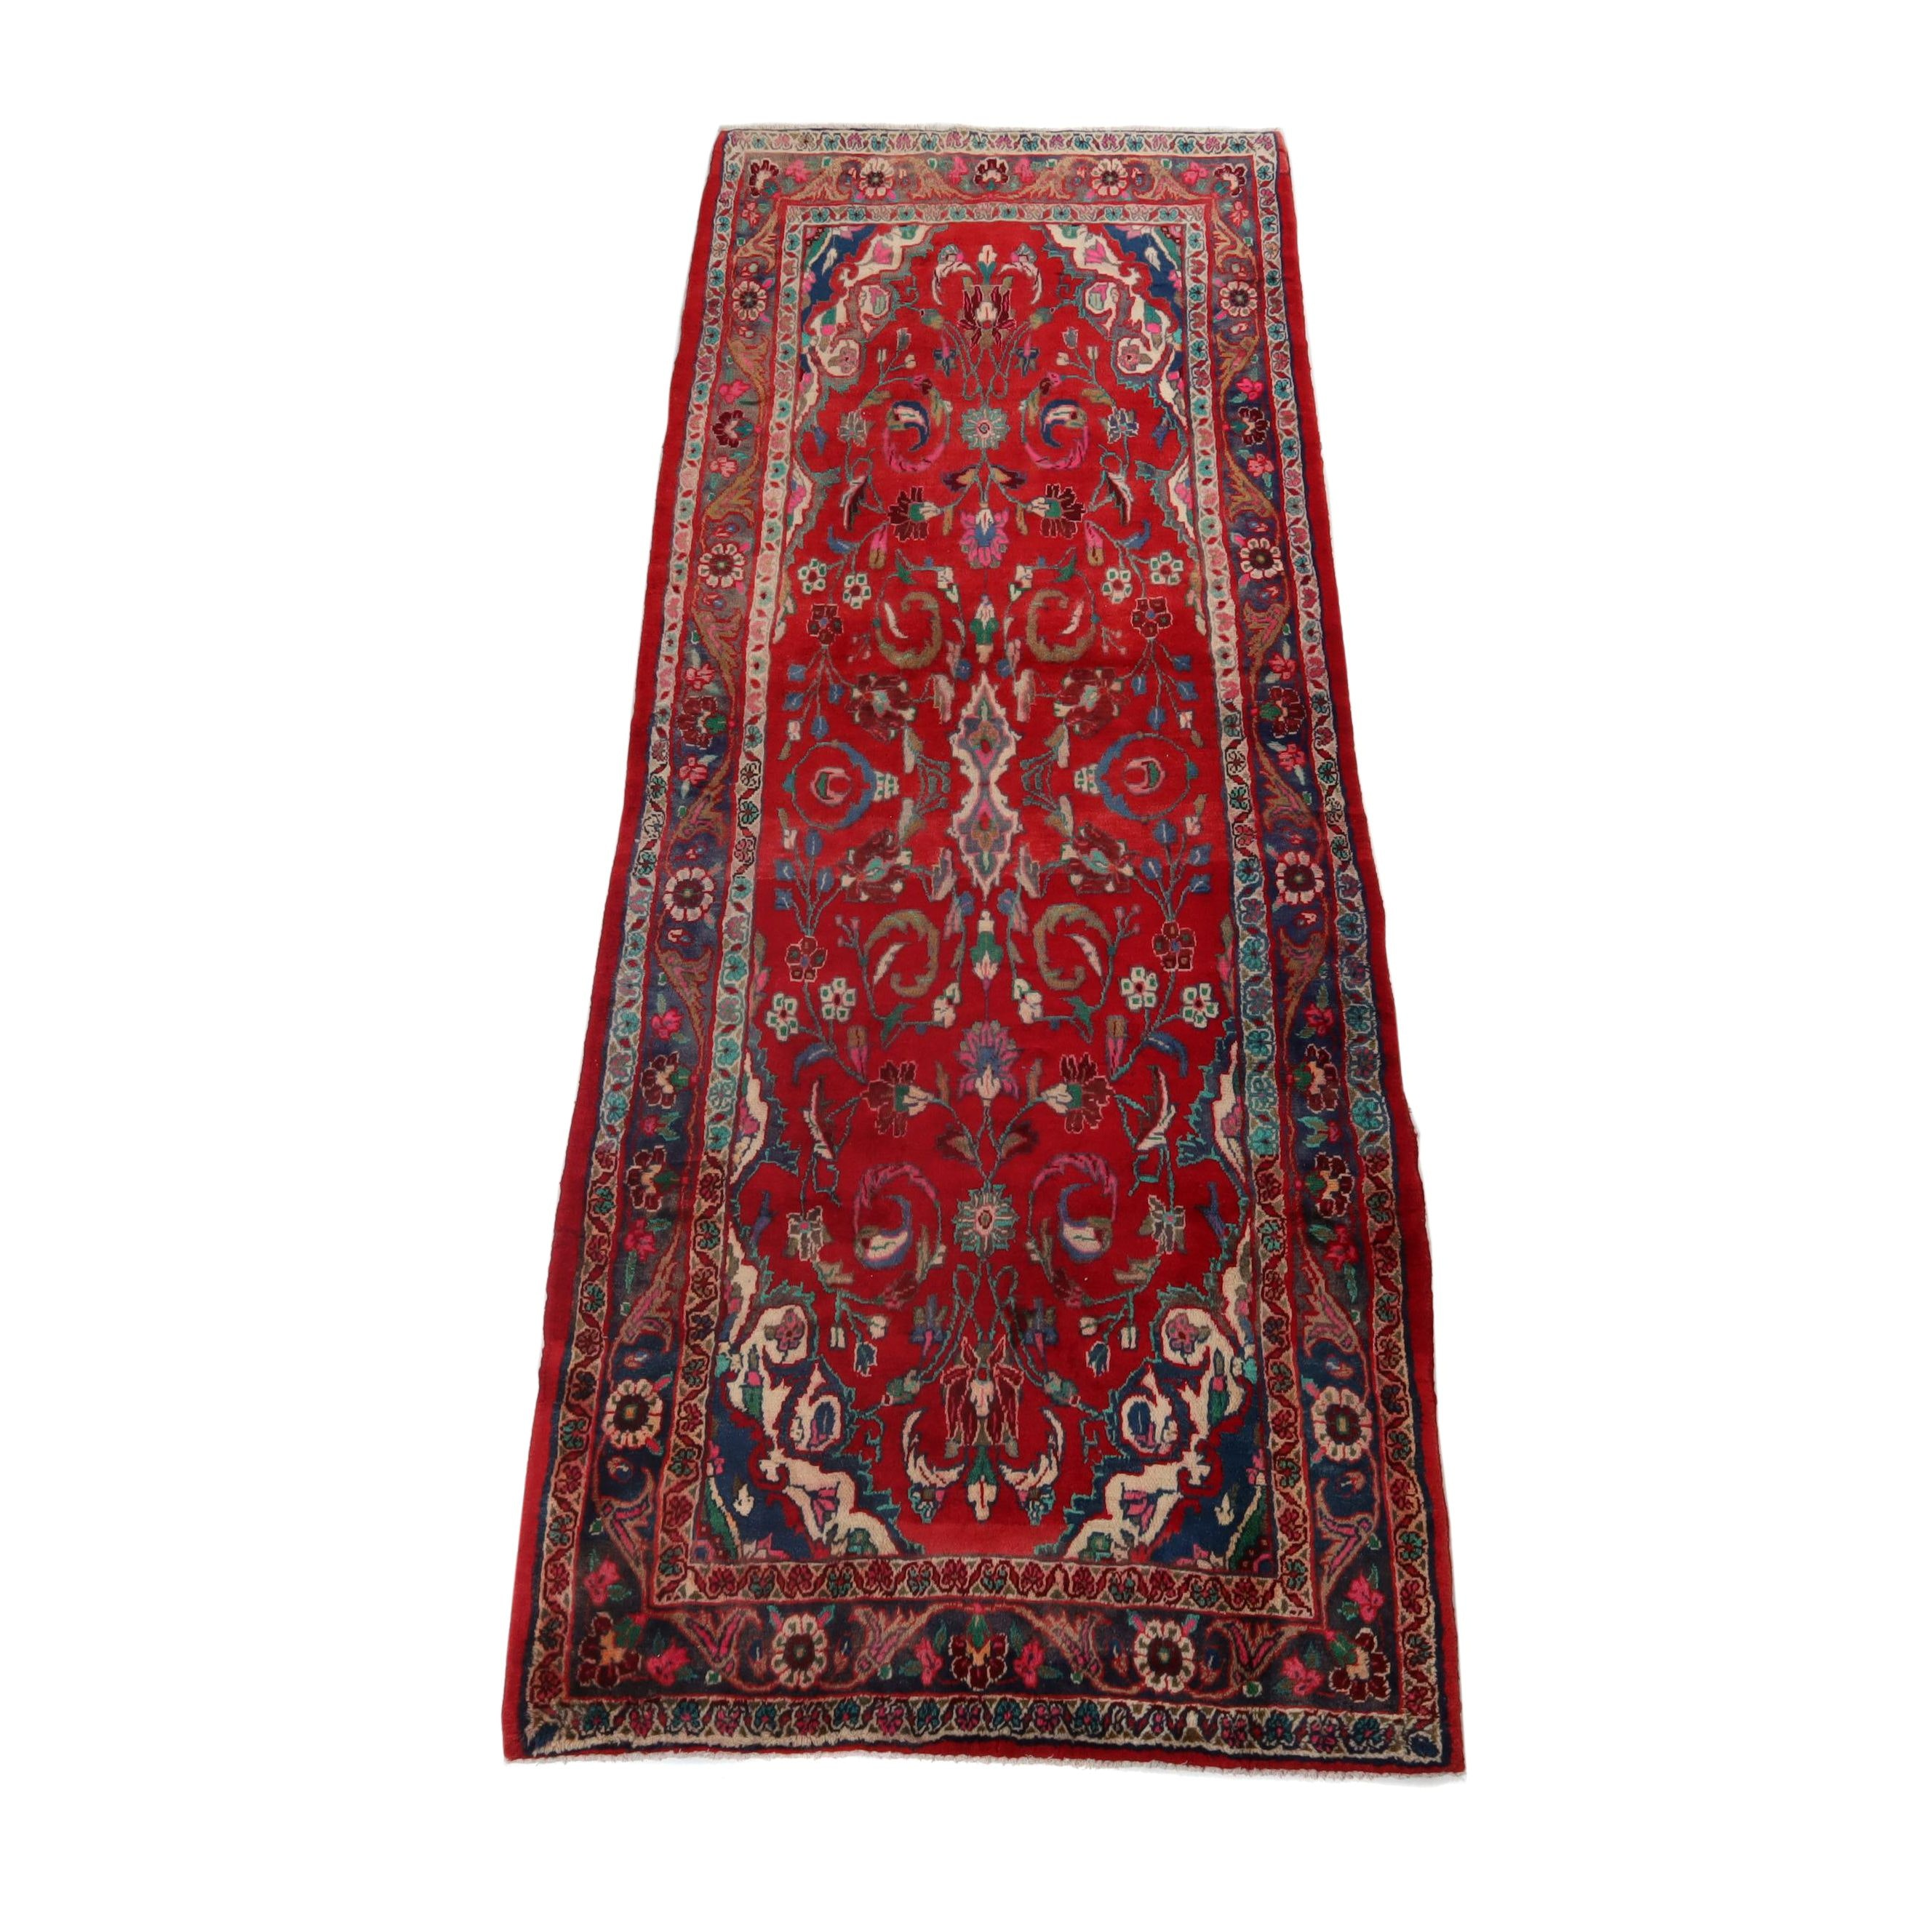 3'7 x 9'6 Hand-Knotted Northwest Persian Wool Long Rug